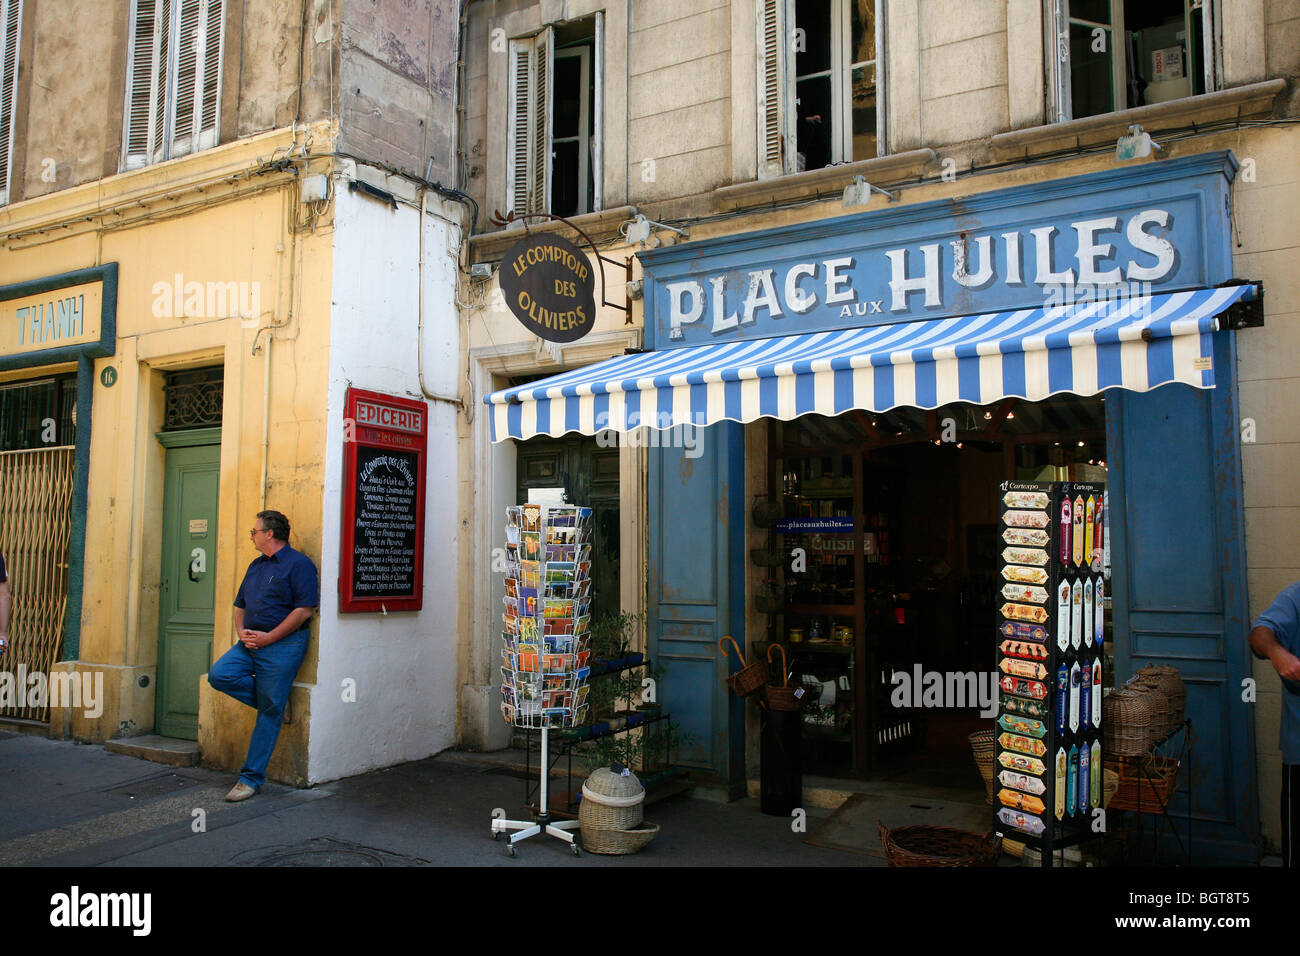 Street scene in the Vieil Aix the old quarter of Aix en Provence, Bouches du Rhone, Provence, France. - Stock Image